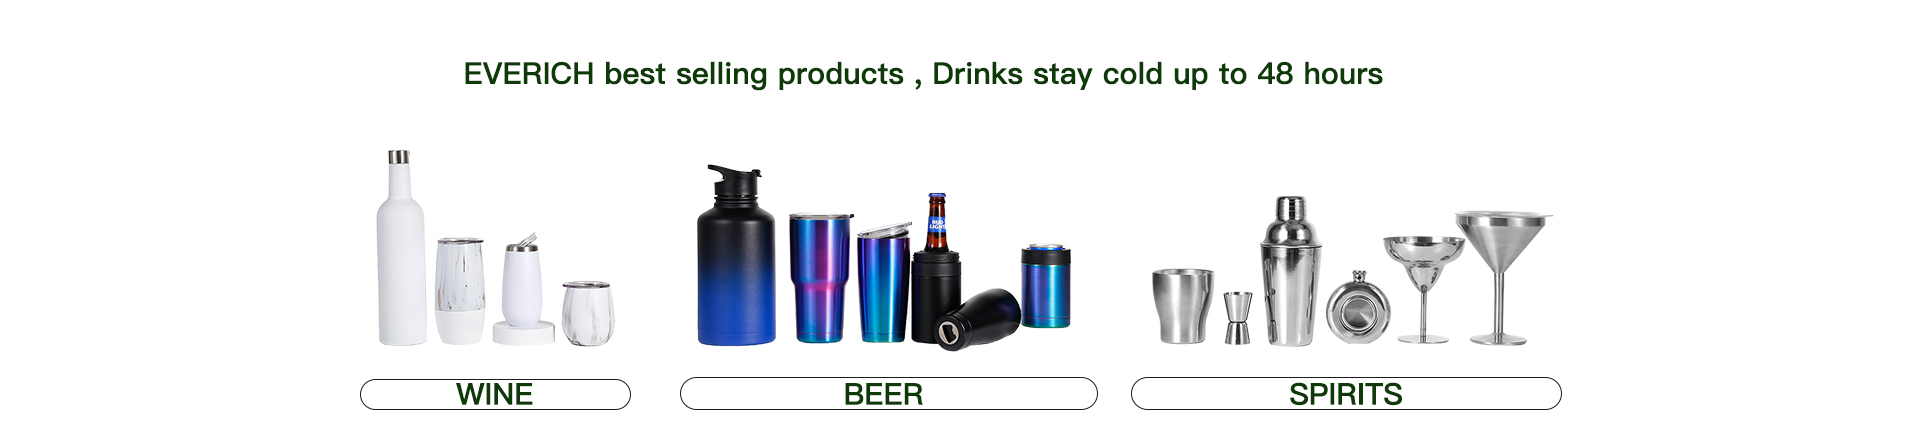 2020 best seller promotional gift 750ml wine bottle and 12oz wine tumbler cups stainless steel wine bottle set with gift box